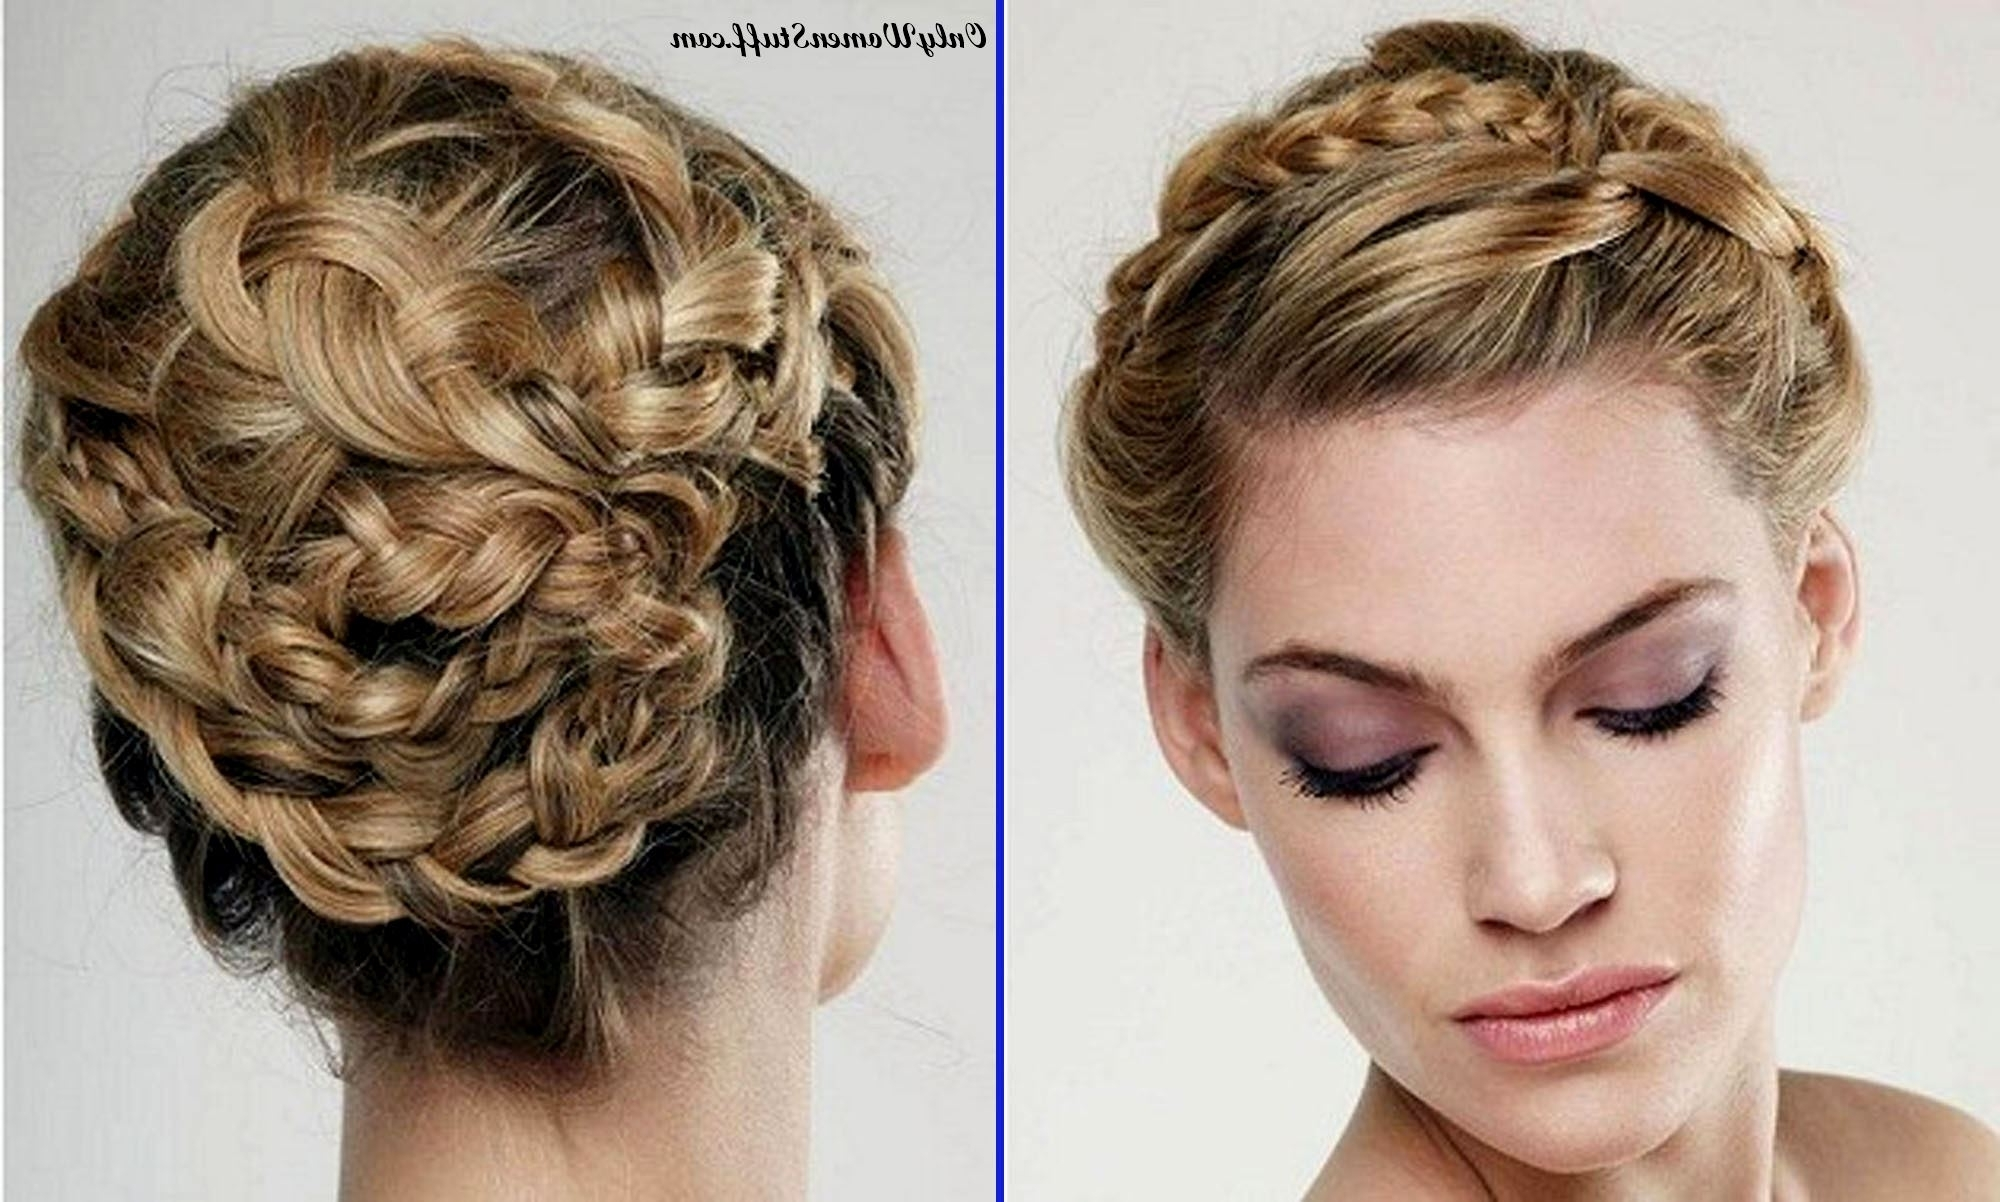 50+ Easy Prom Hairstyles & Updos Ideas (Stepstep) Pertaining To Prom Updo Hairstyles (View 4 of 15)